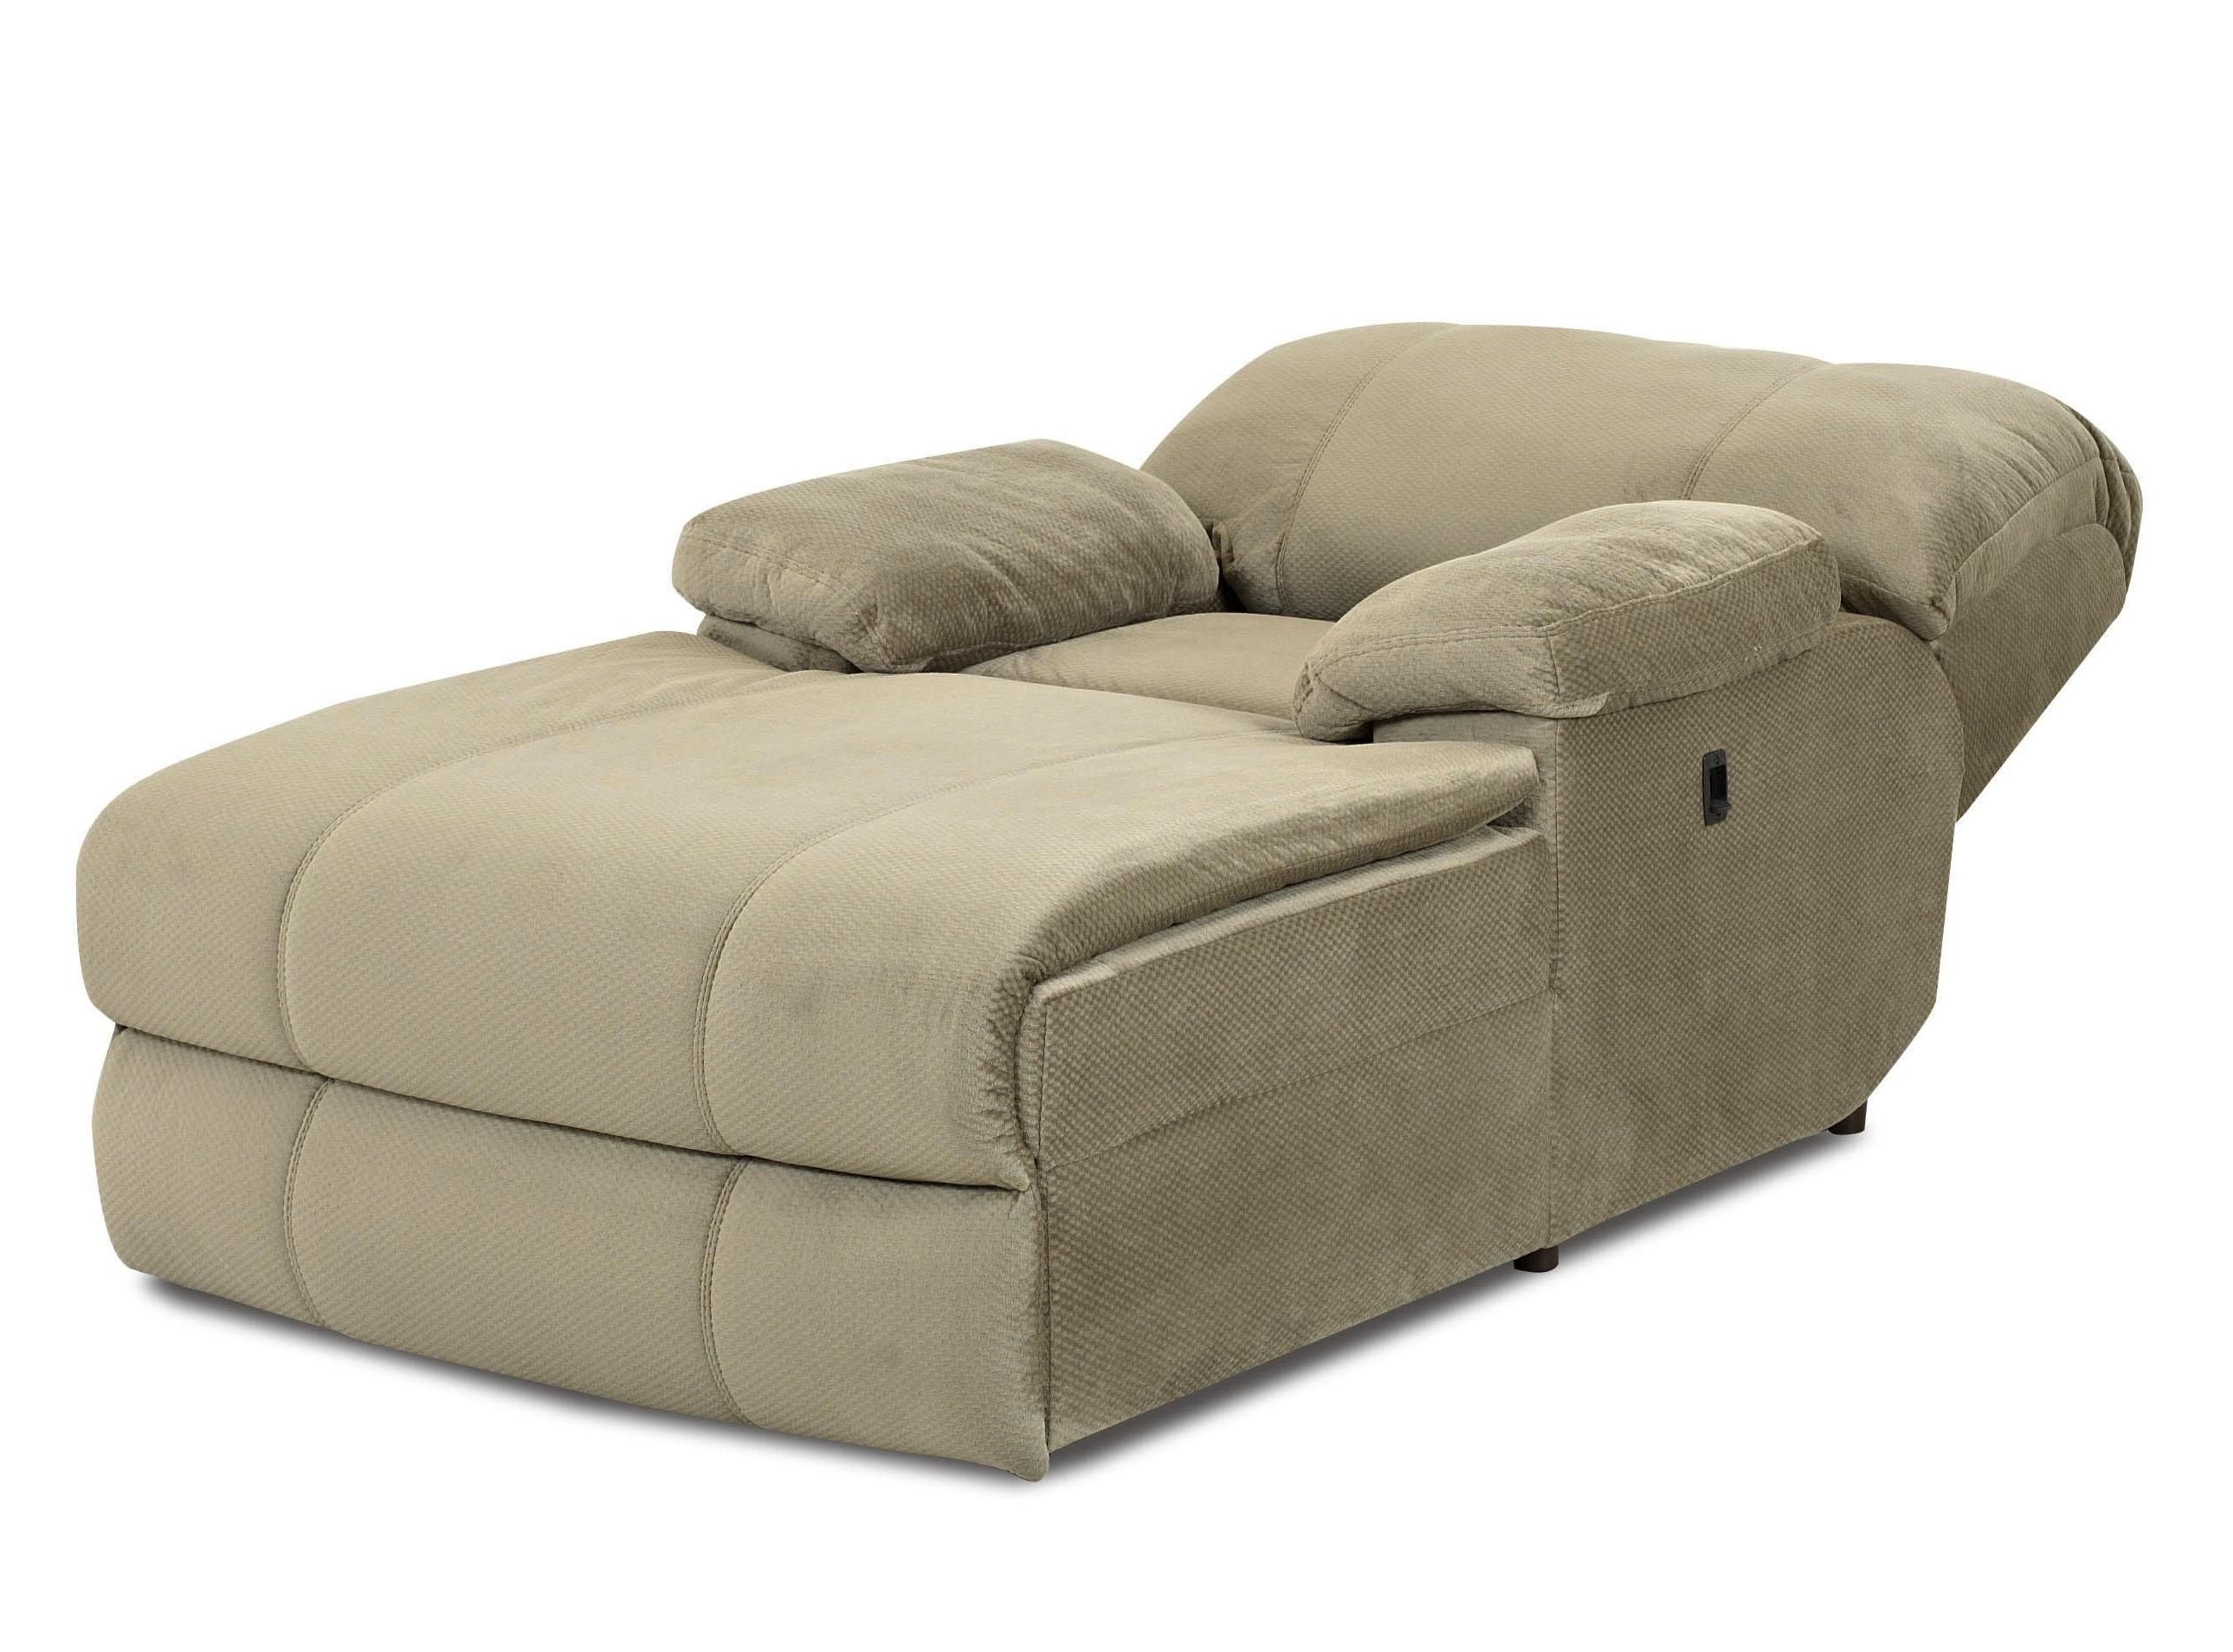 Oversized Double Chaise Lounge Chair (View 11 of 15)